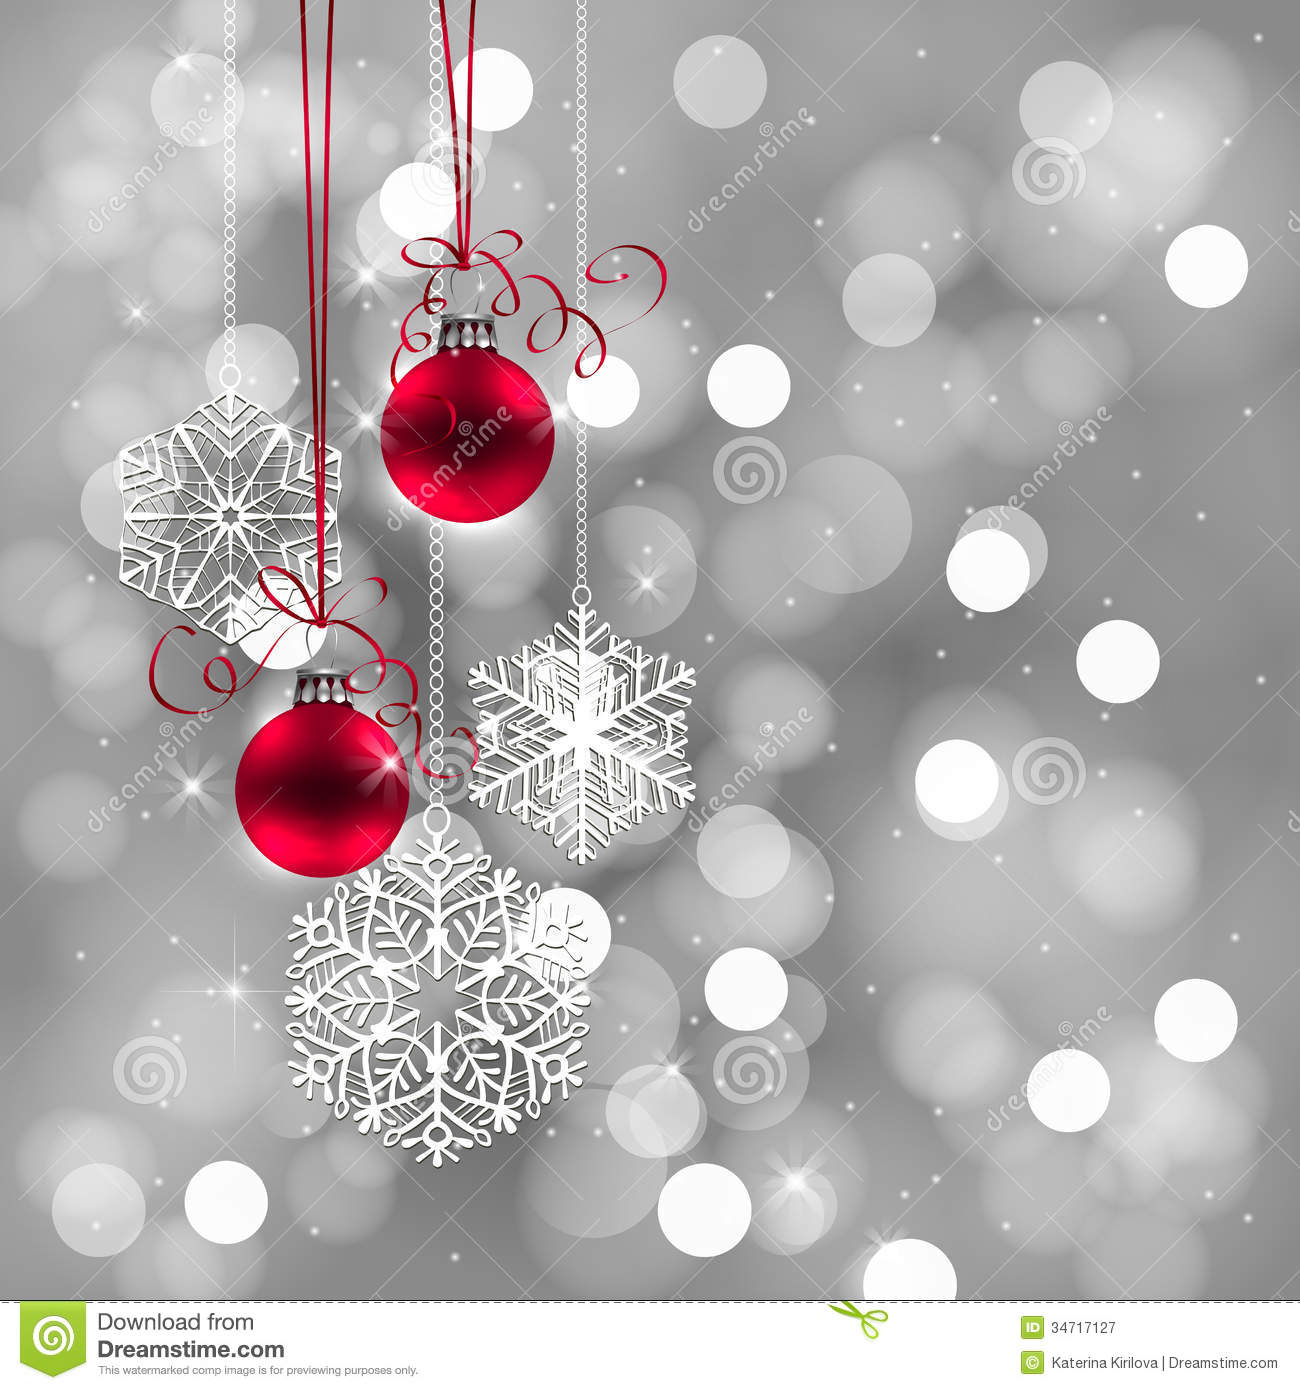 Christmas Background Royalty Free Stock Photography - Image: 34717127